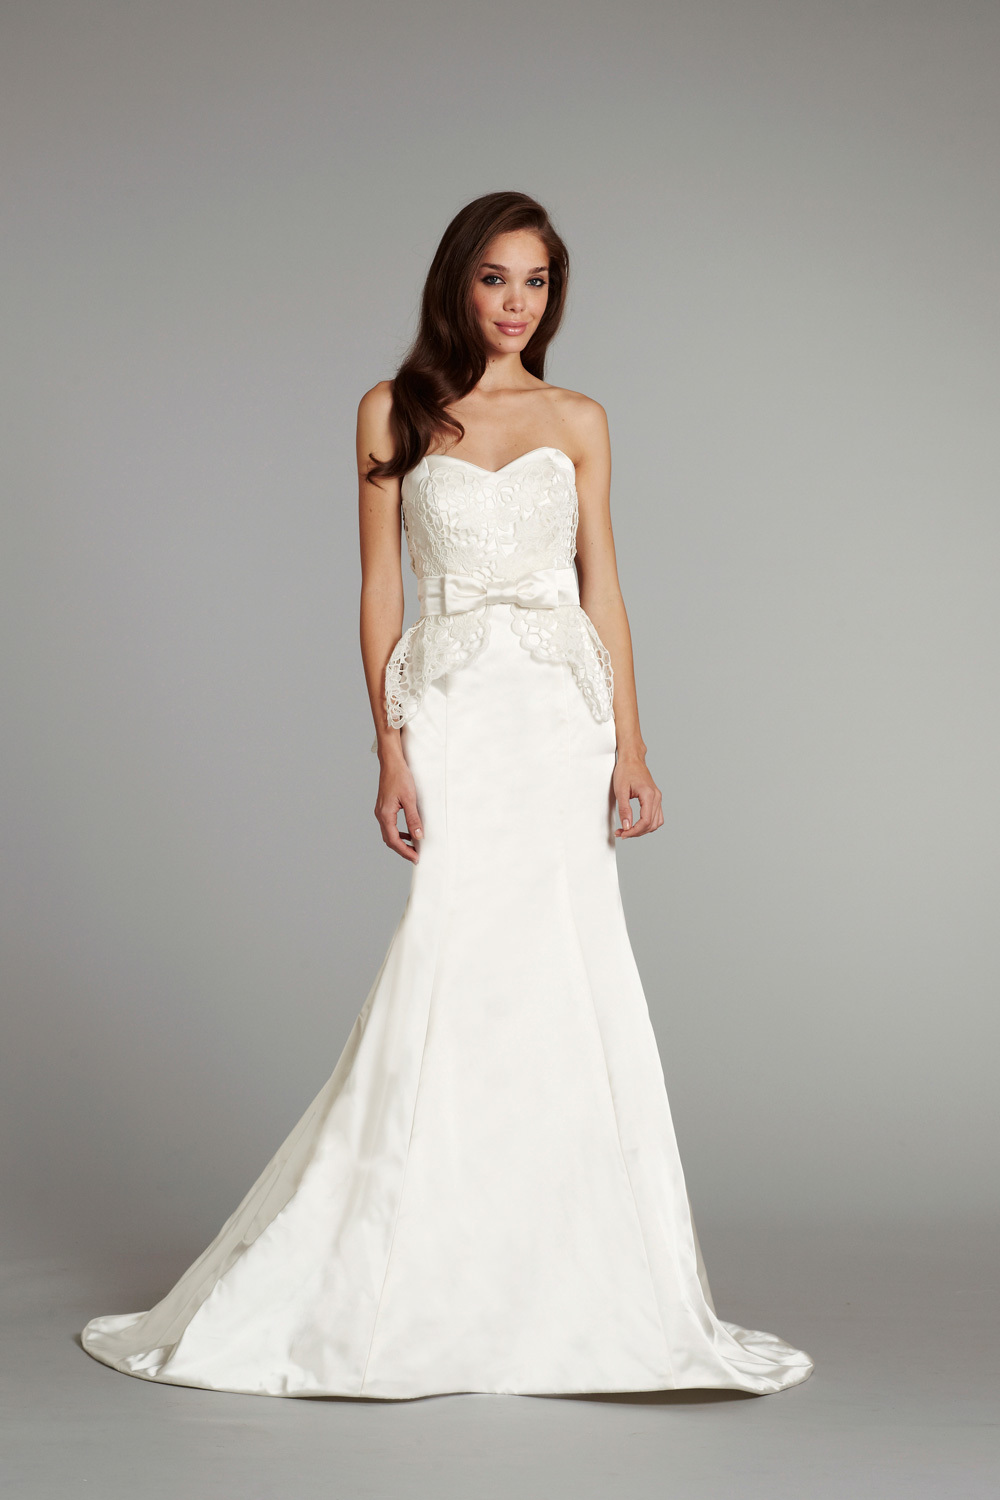 New-bridal-gowns-fall-2012-wedding-dress-hayley-paige-for-jlm-couture-sloane.full